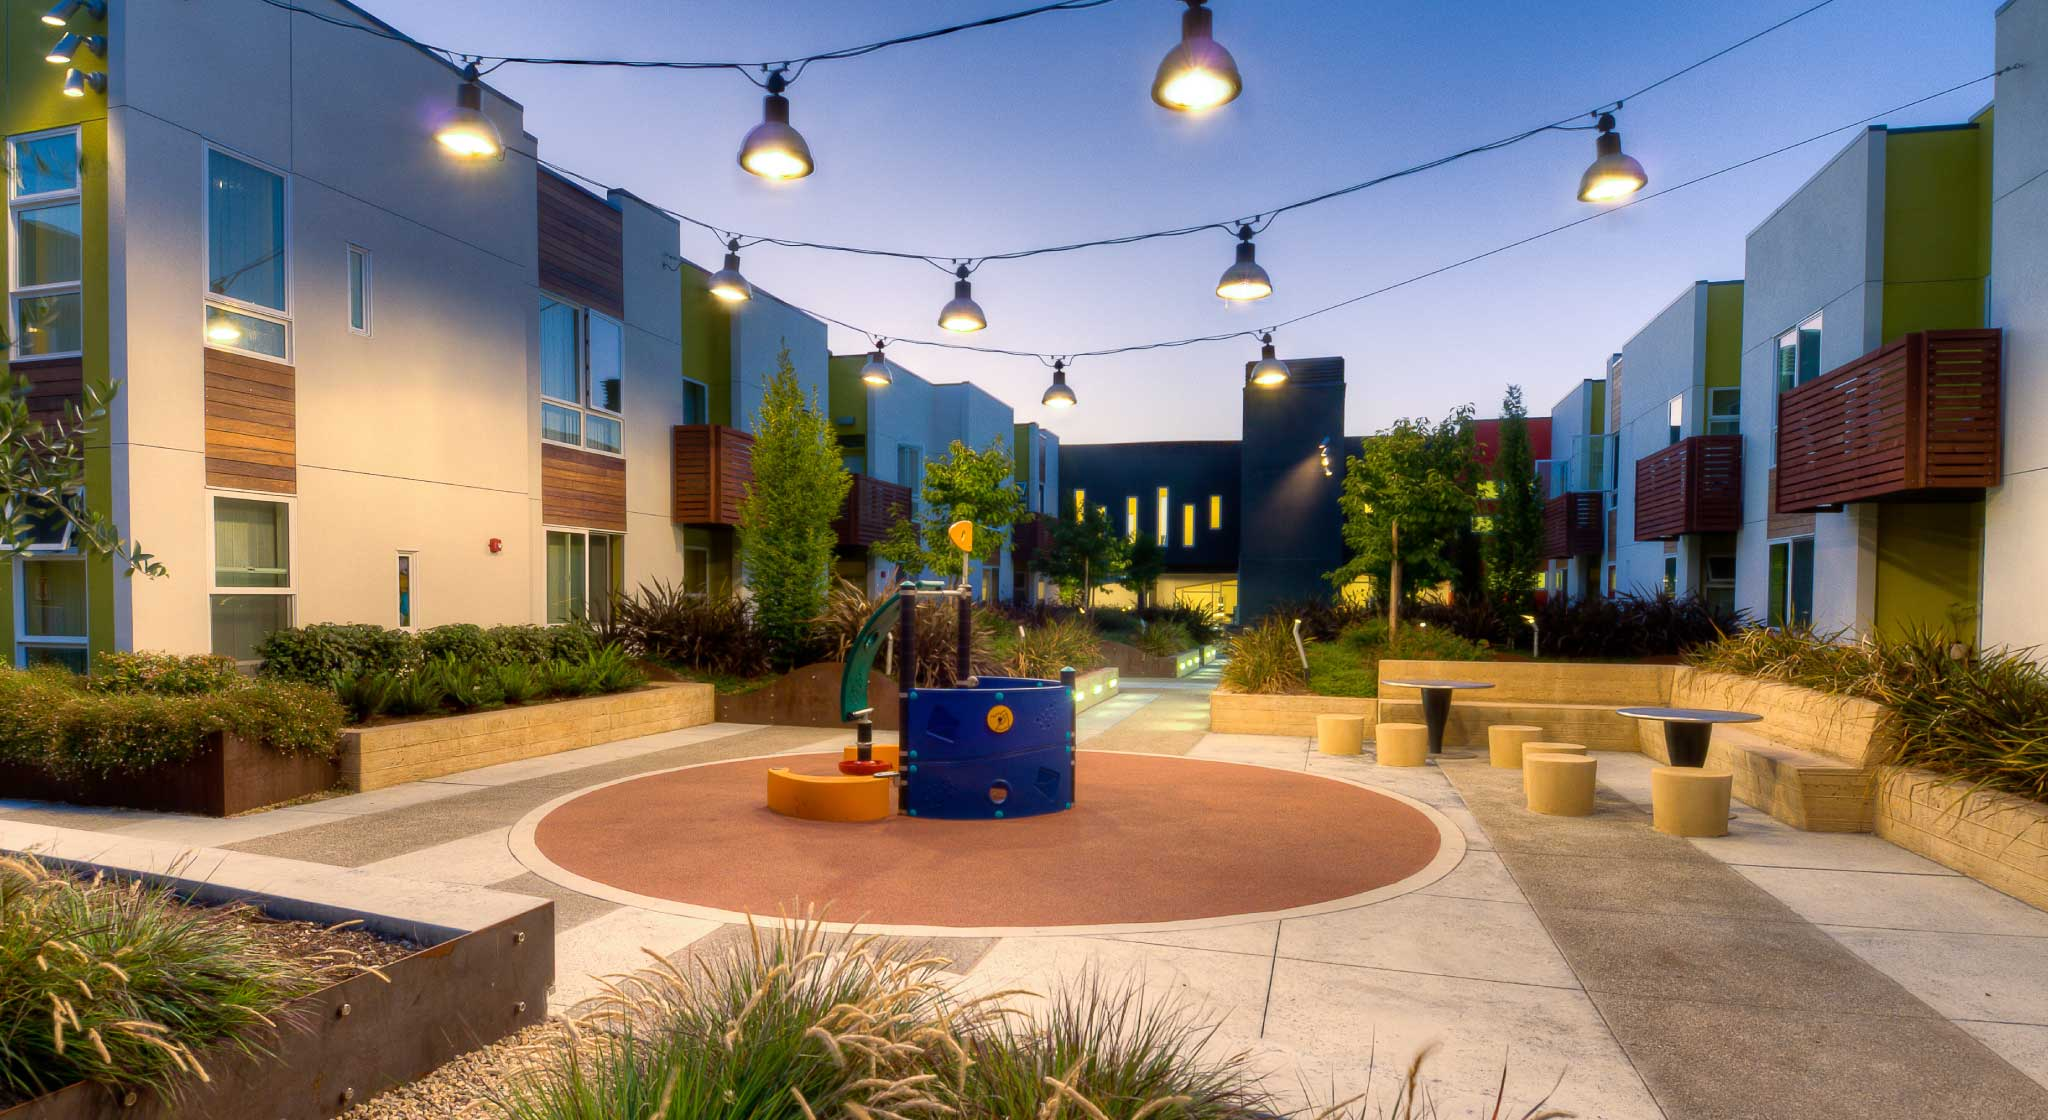 Evening view of a courtyard at Tassafaronga Village with playground between multifamily buildings